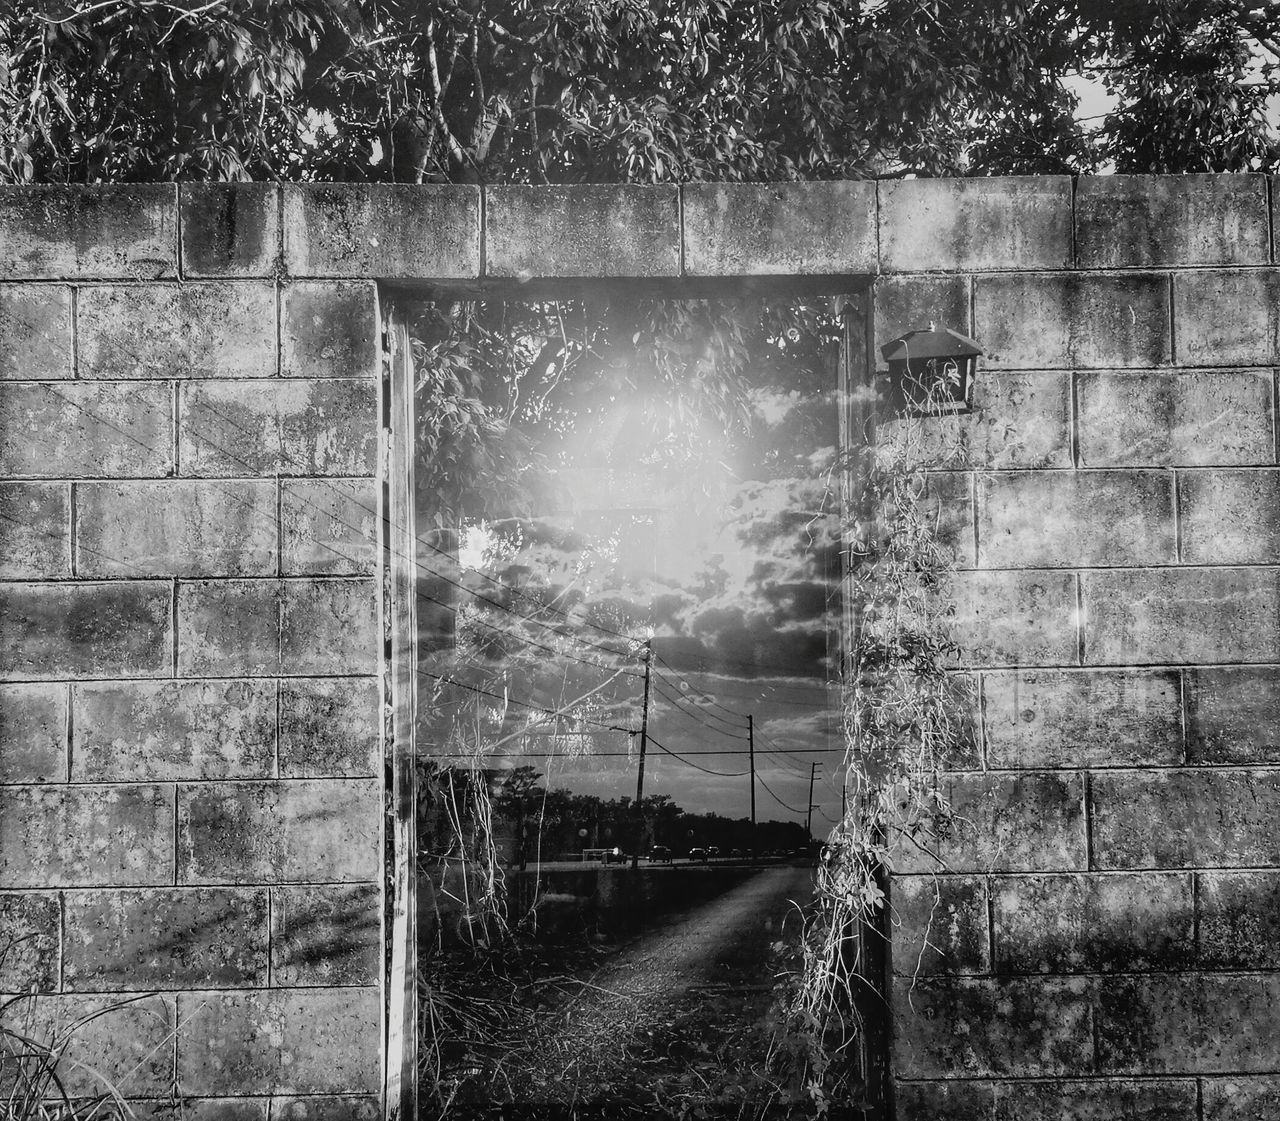 Window Day Built Structure Architecture Building Exterior Outdoors No People Tree Break The Mold Double Exposure Playing With Effects Sunlight Doorway Walkway Black & White Mymind EyeEmNewHere Art Is Everywhere TCPM Not Strange To Me Cut And Paste Freshness Sky Open Doorway Fun BYOPaper!